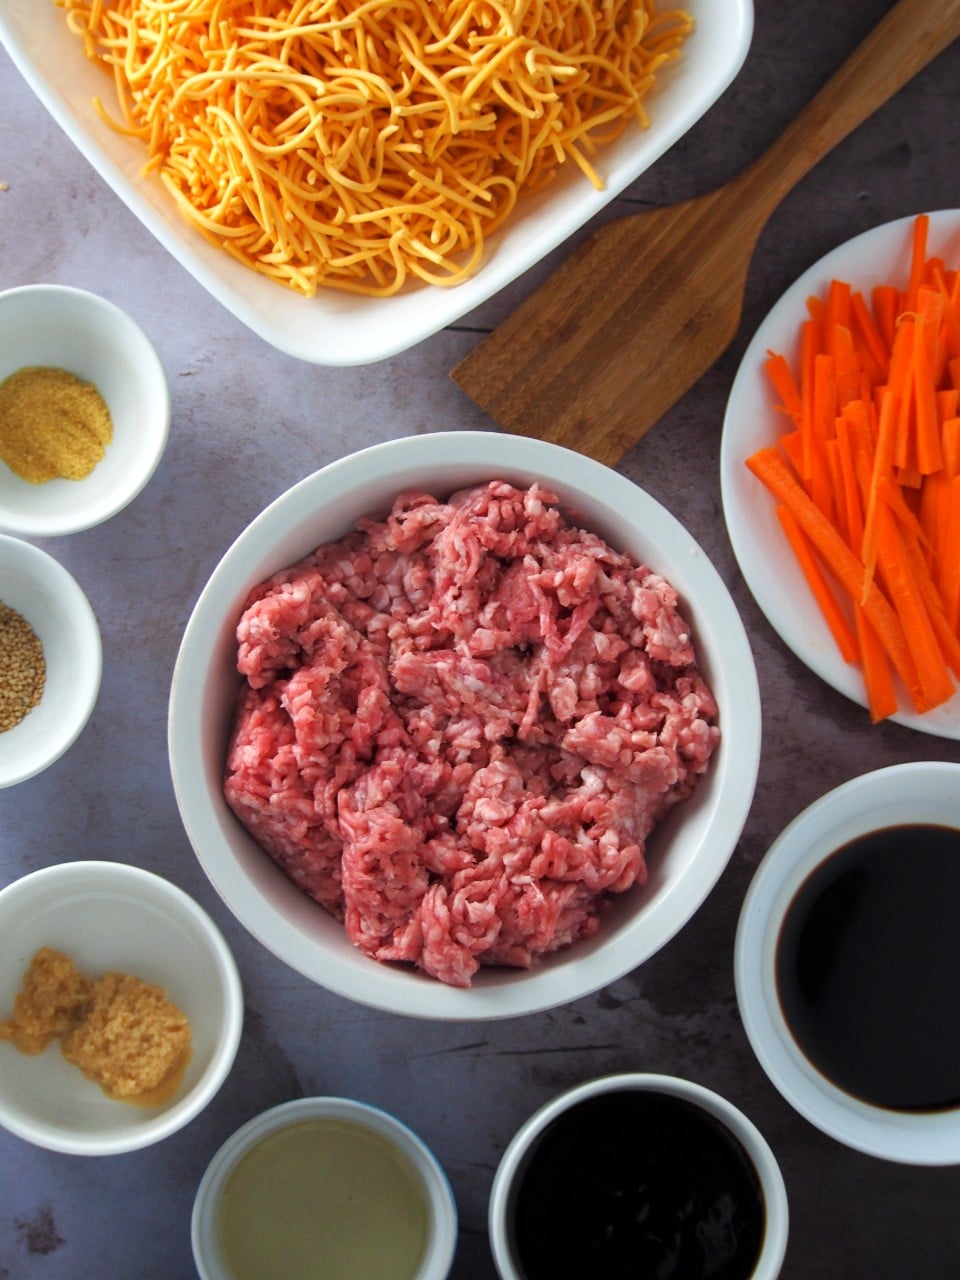 Ground pork, carrots, noodles and sauces for the Garlic pork Chow mein.